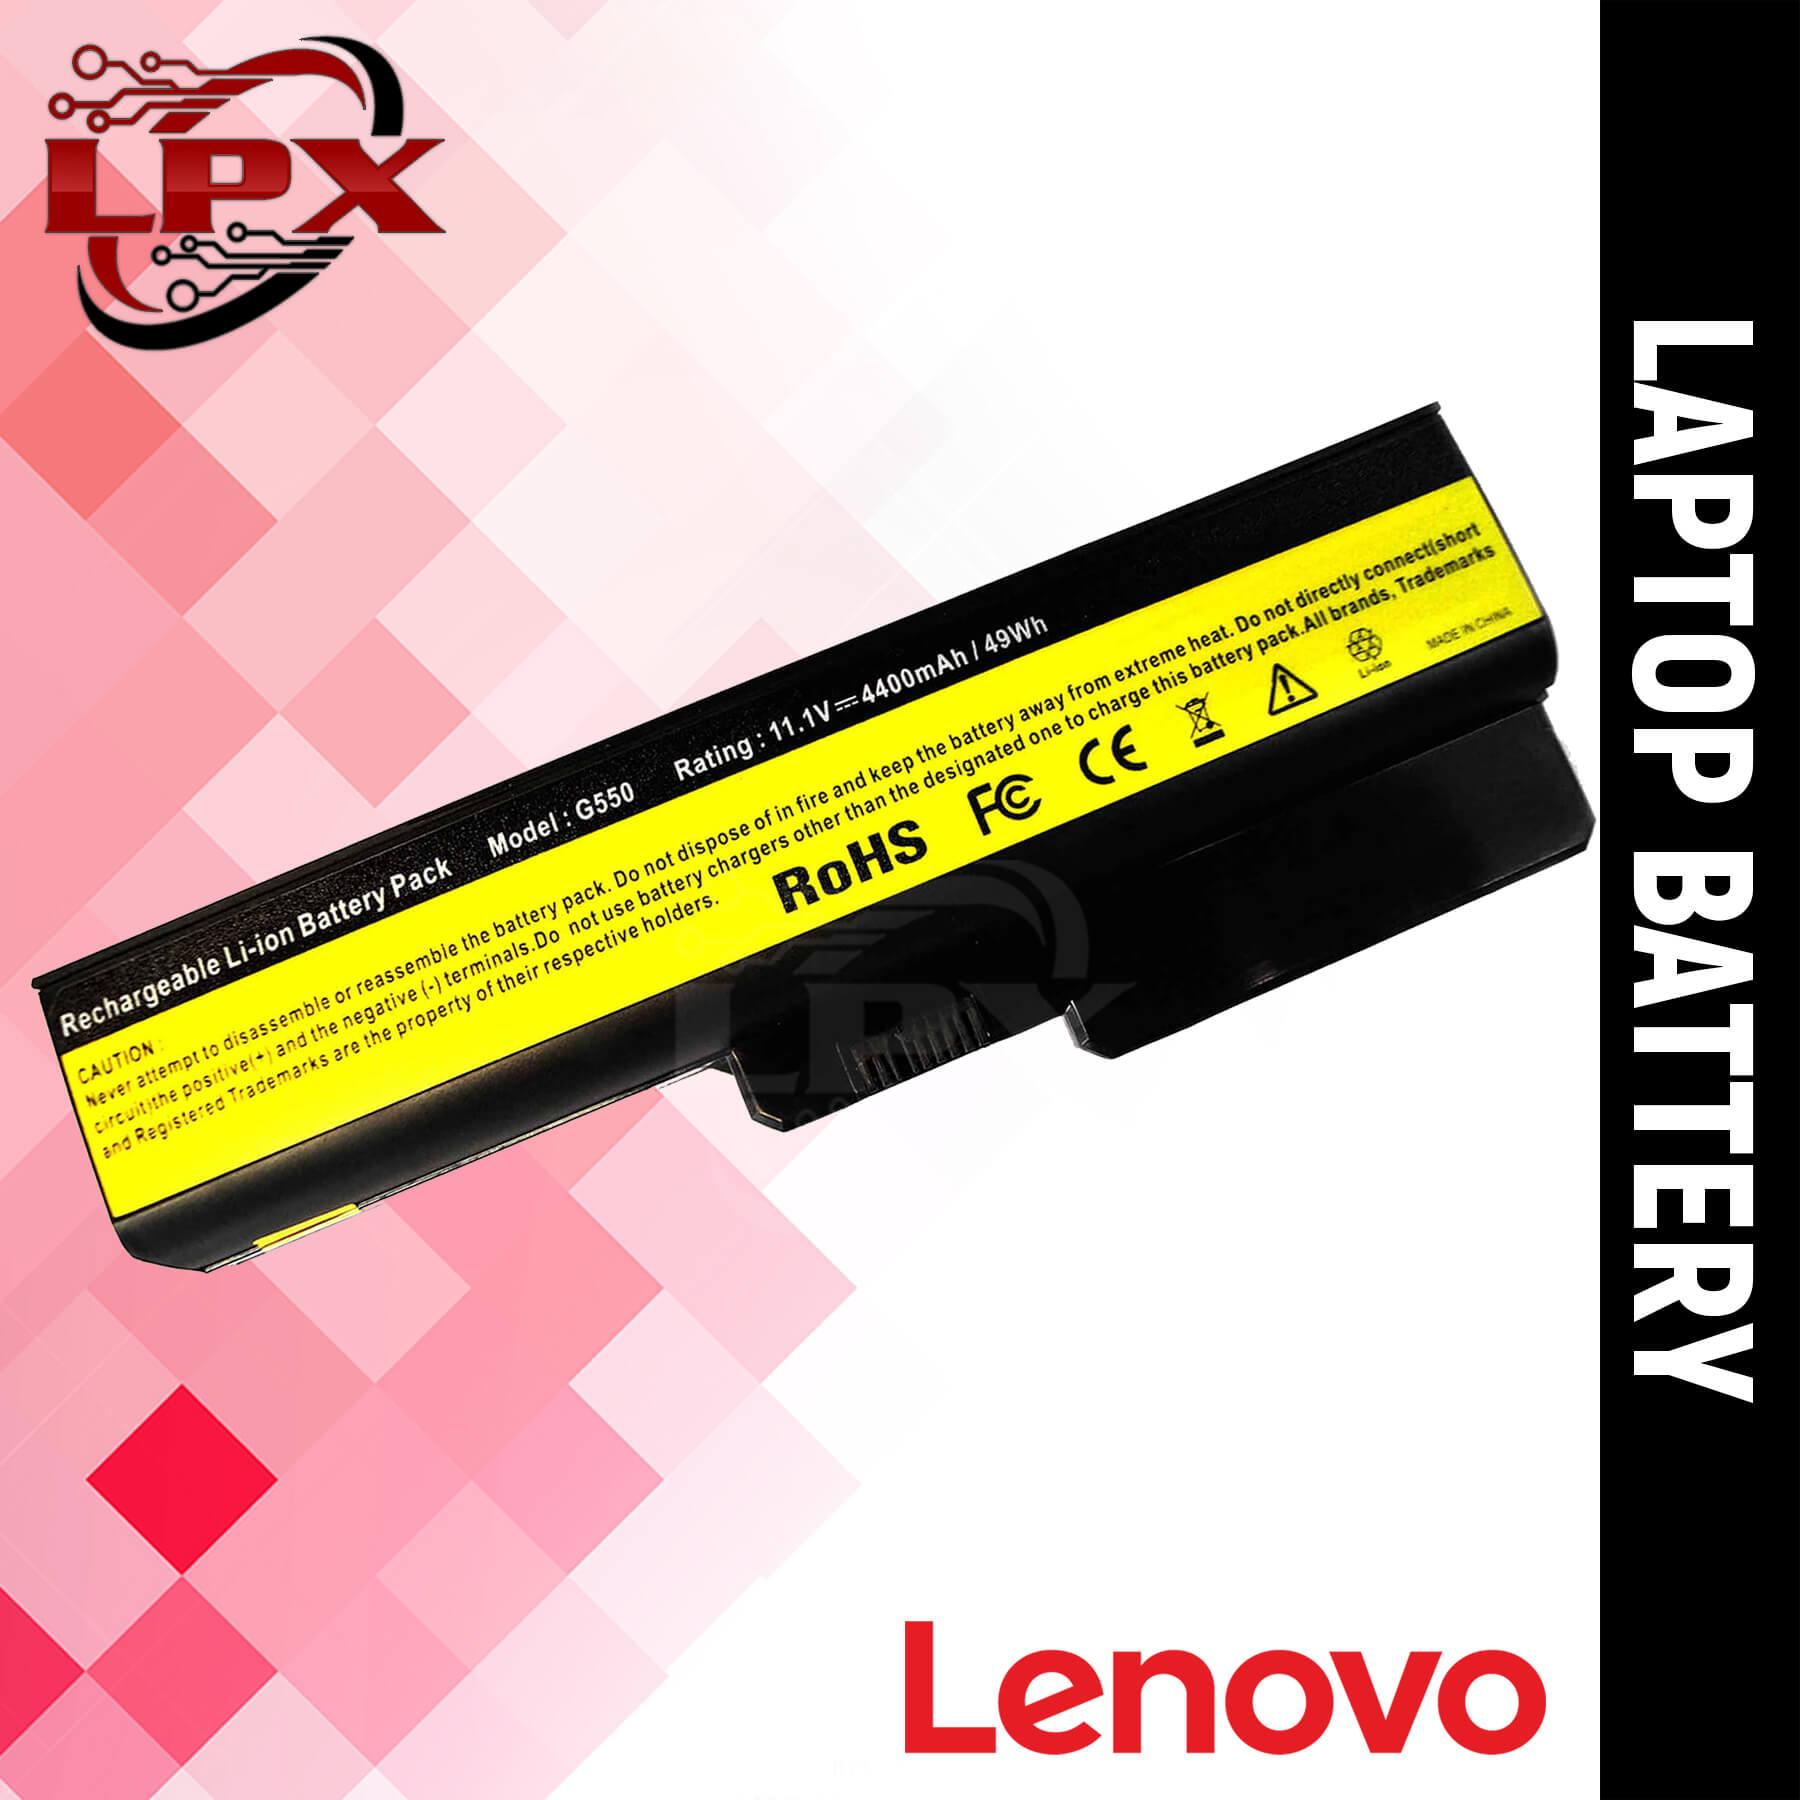 Lenovo Philippines -Lenovo Computer Batteries for sale - prices